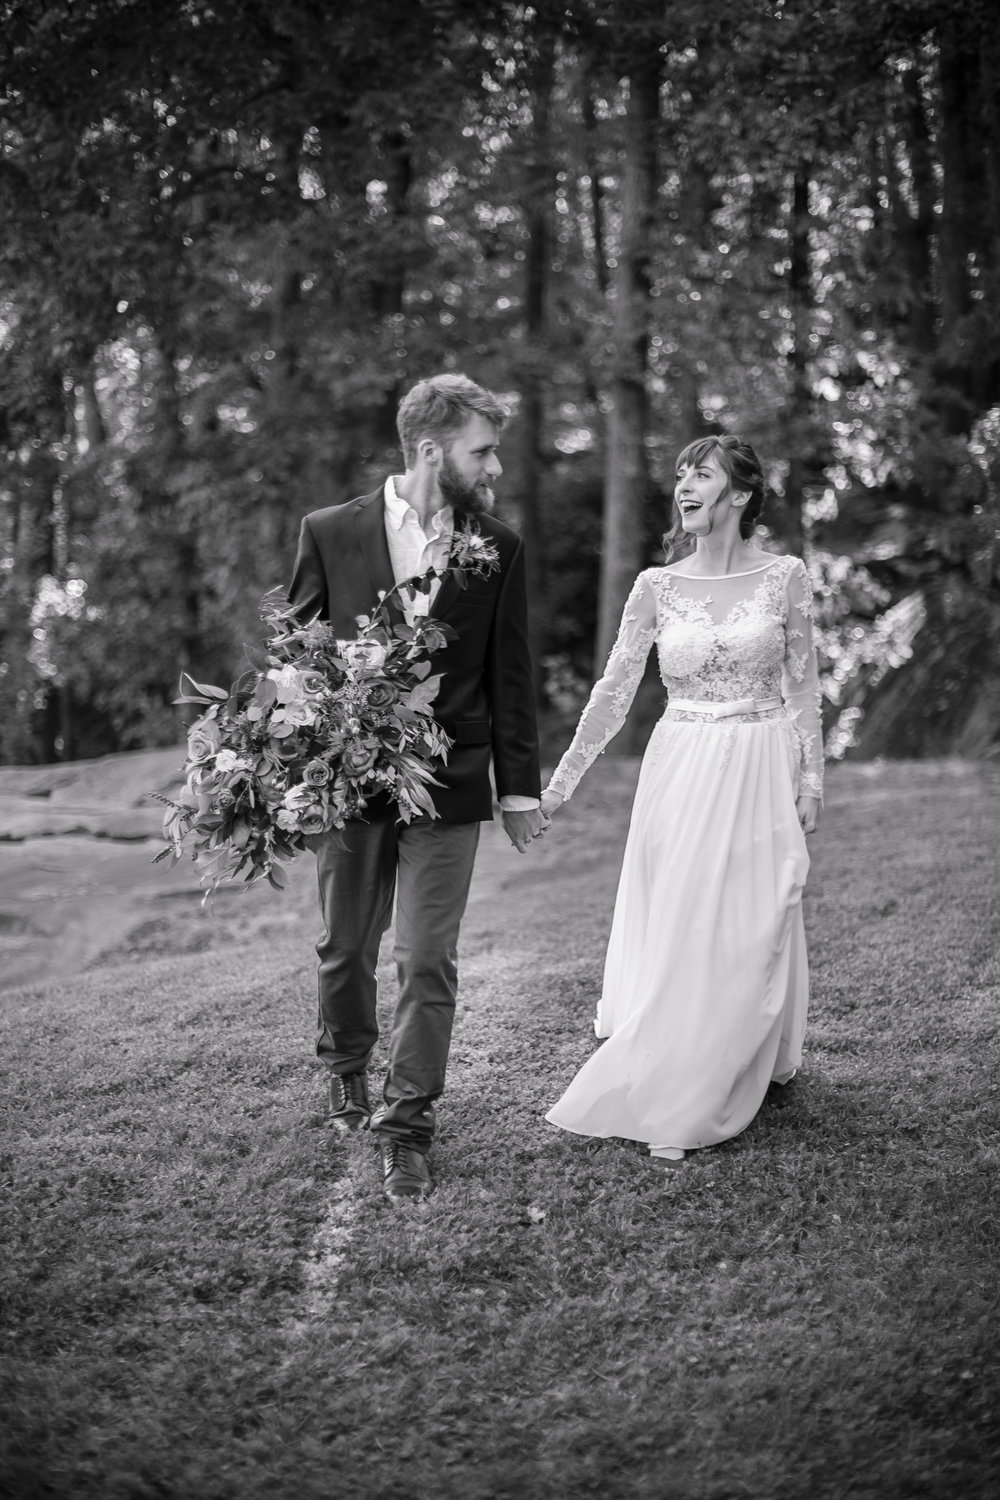 Laurel Falls Wedding October 2018_Allison and Josh__Lola Salon_Flora_Photo by Studio Misha Photography-51.jpg